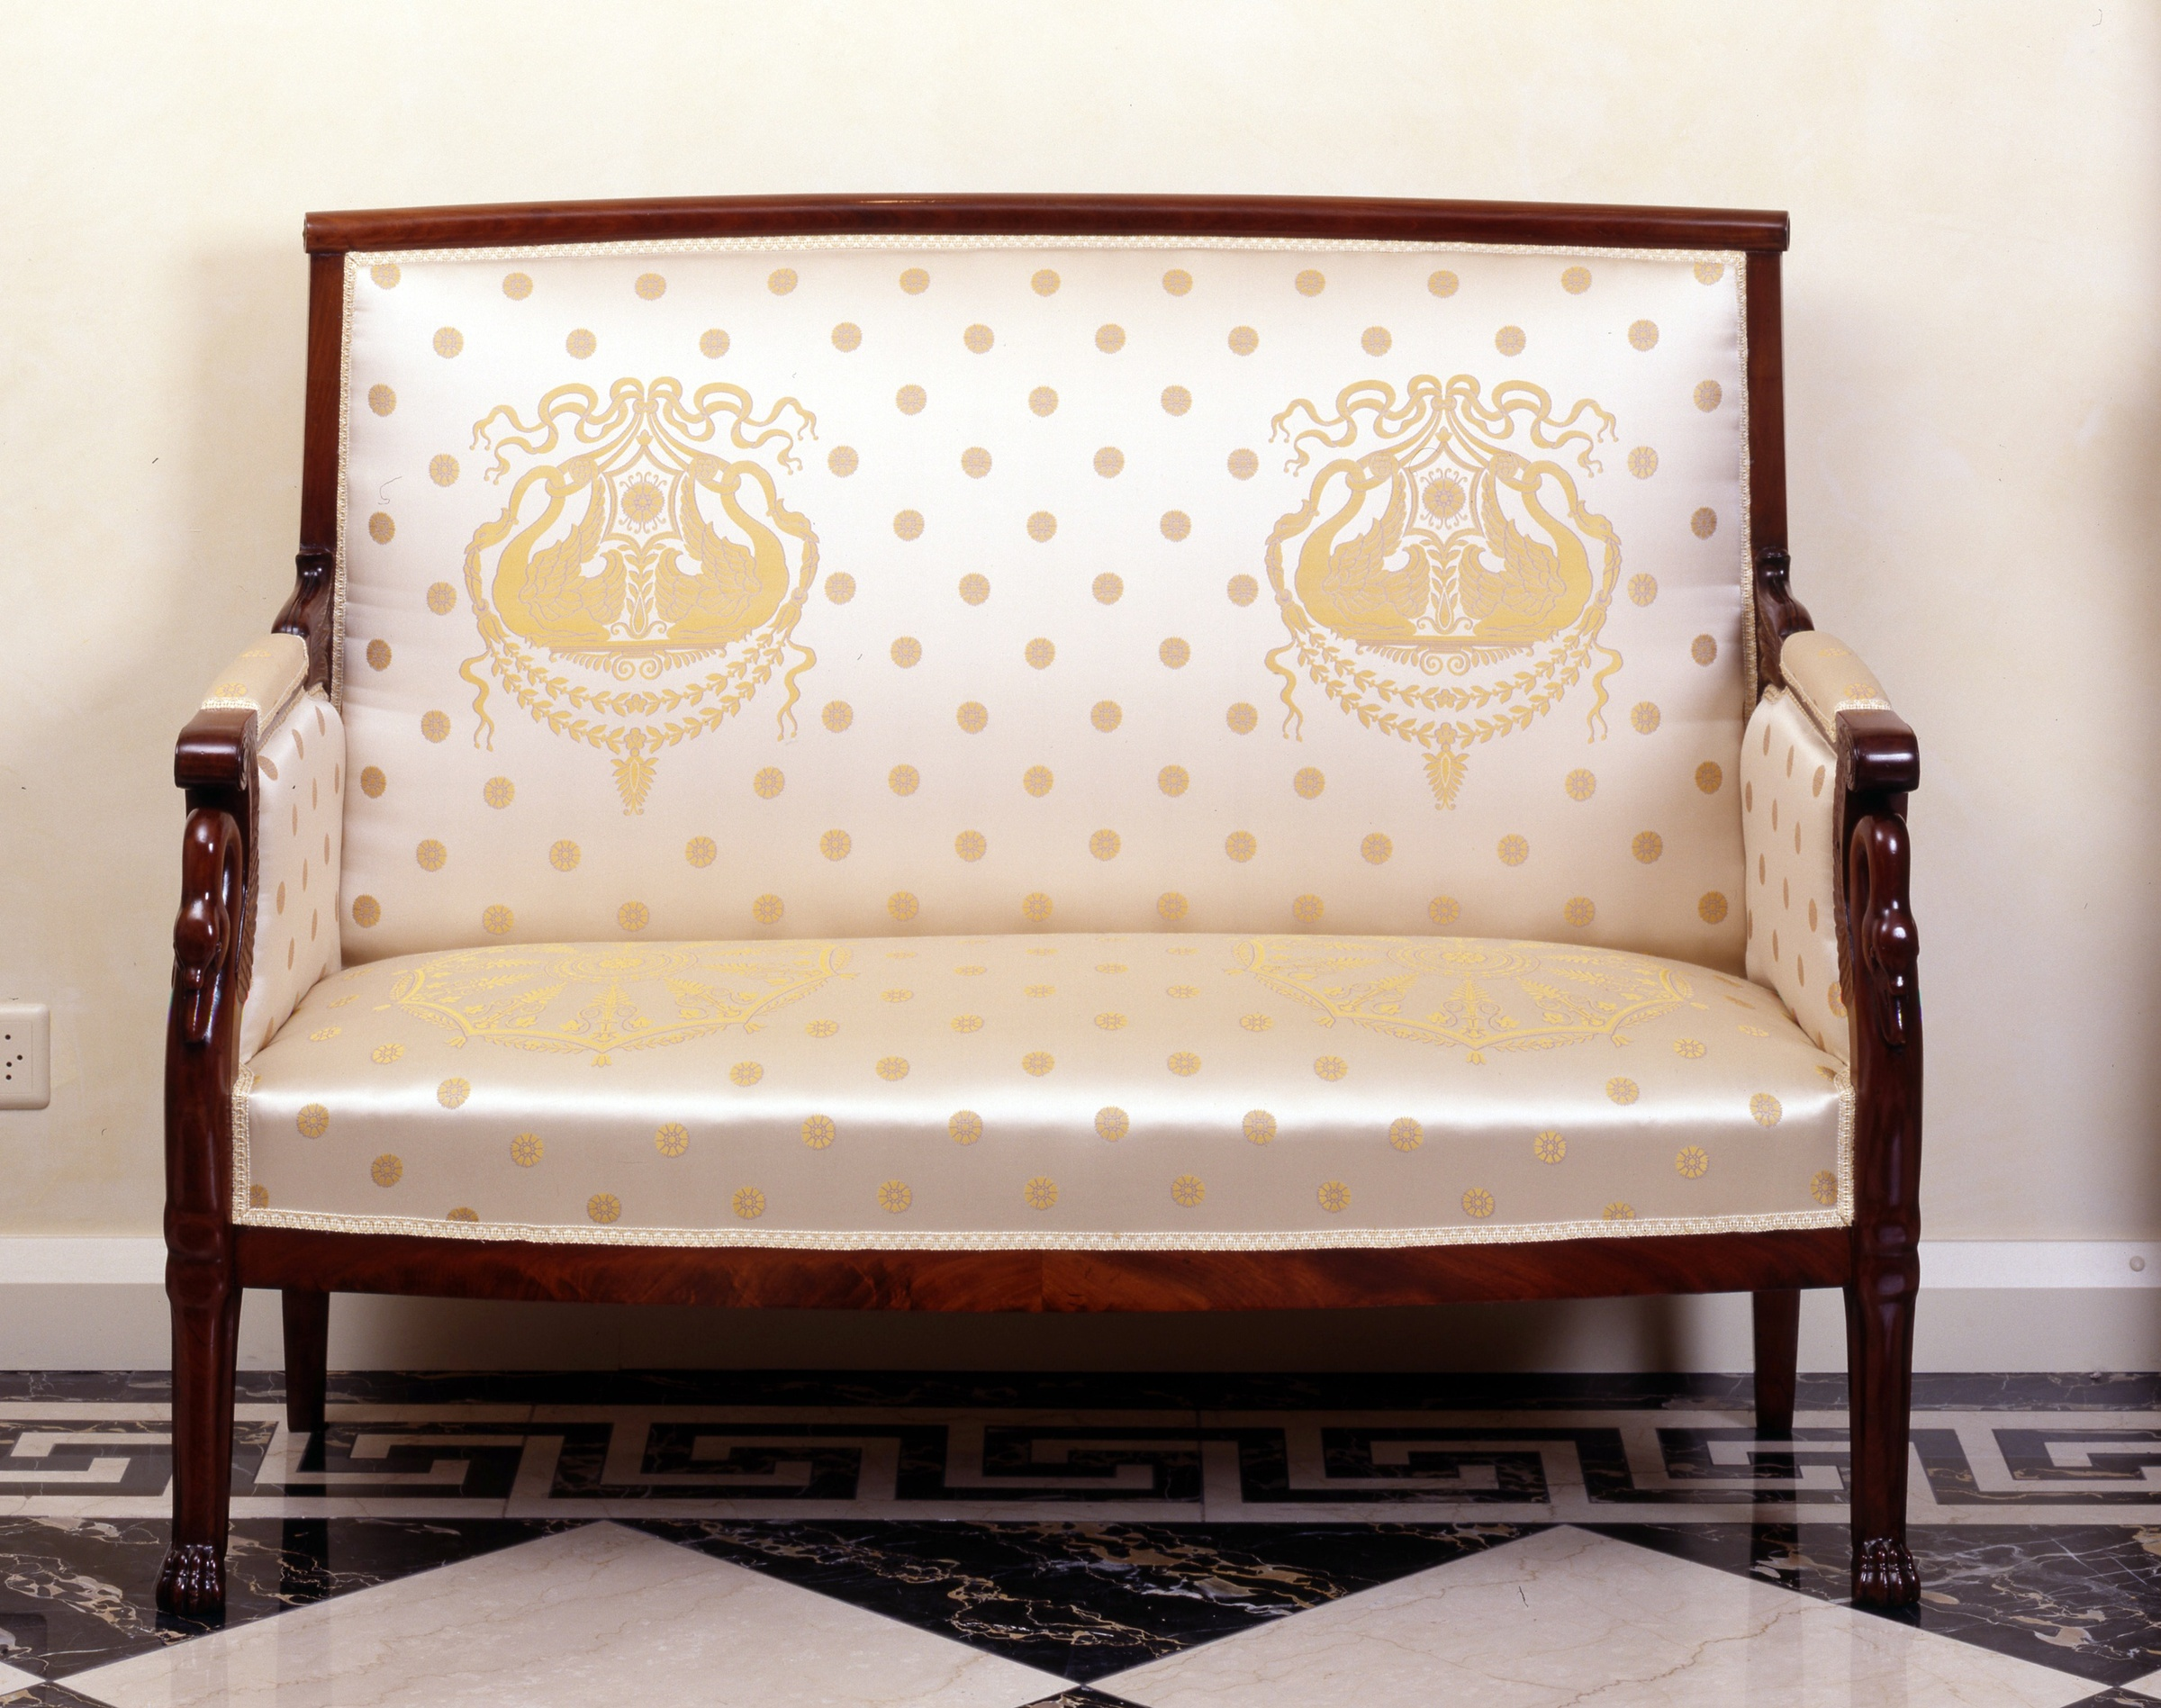 Dating empire furniture